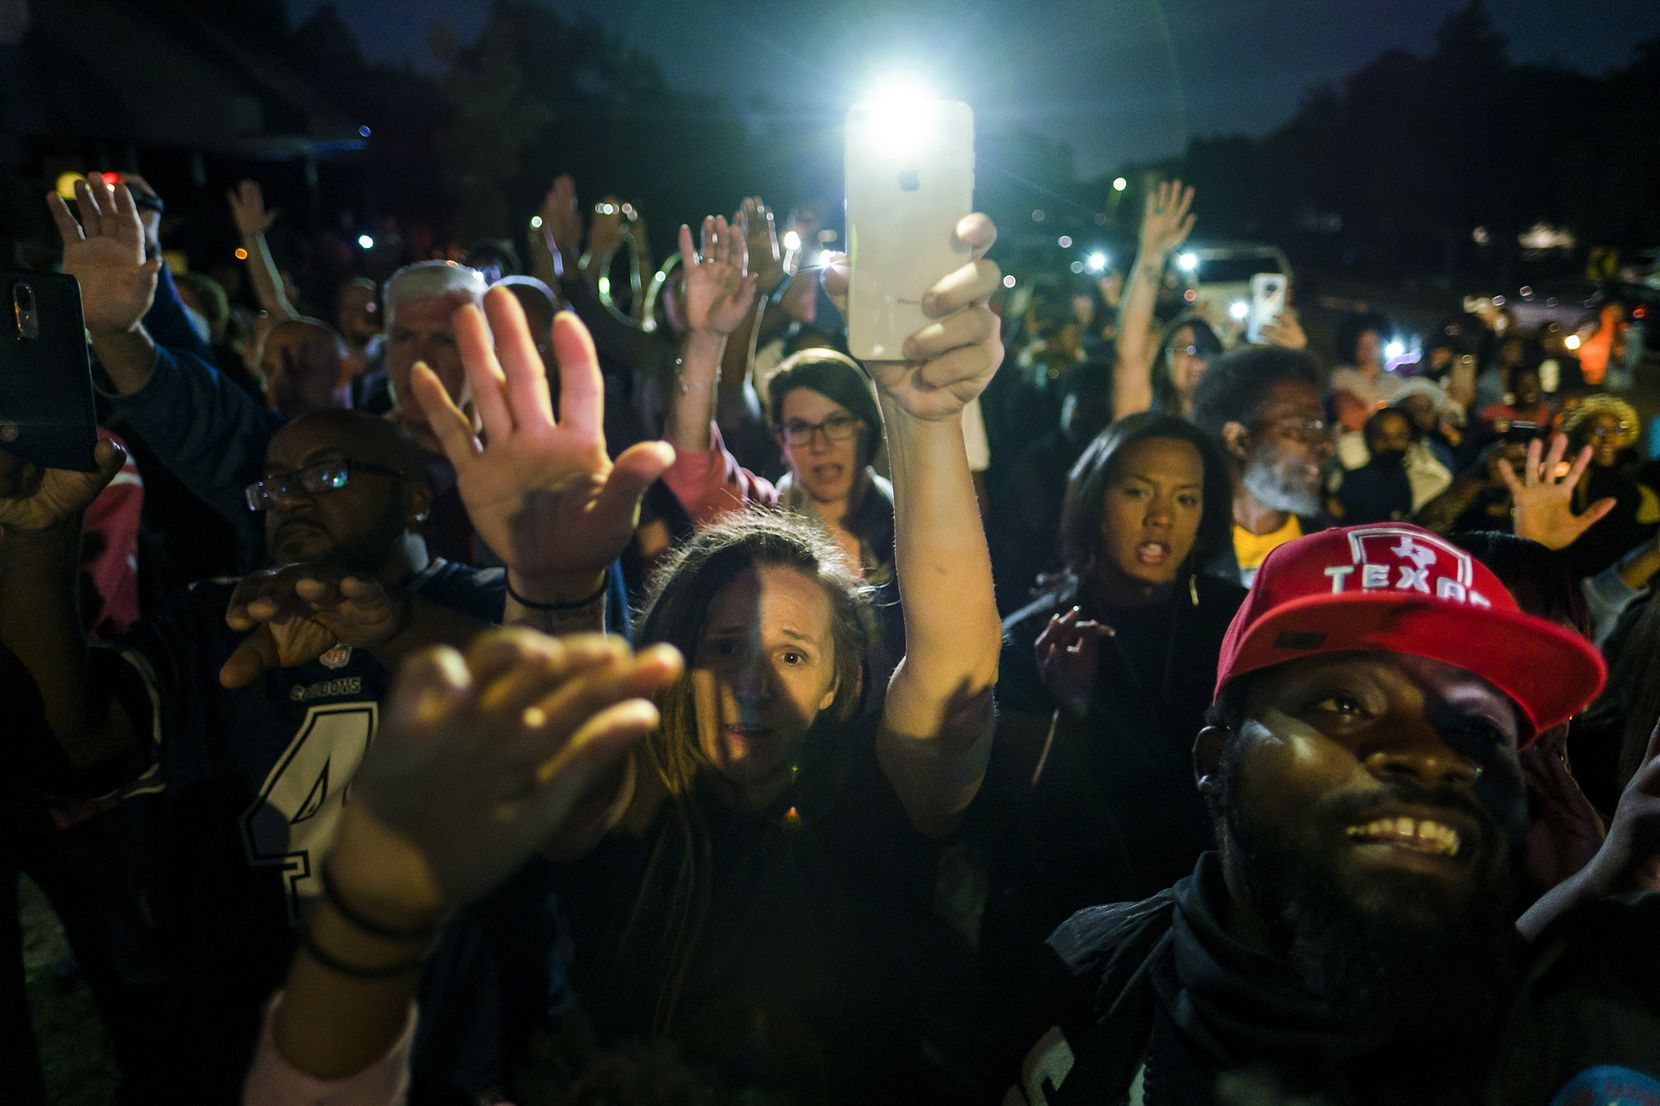 A large crowd gathers outside the house where Atatiana Jefferson was shot and killed, during a community vigil for Jefferson on Sunday, Oct. 13, 2019, in Fort Worth.